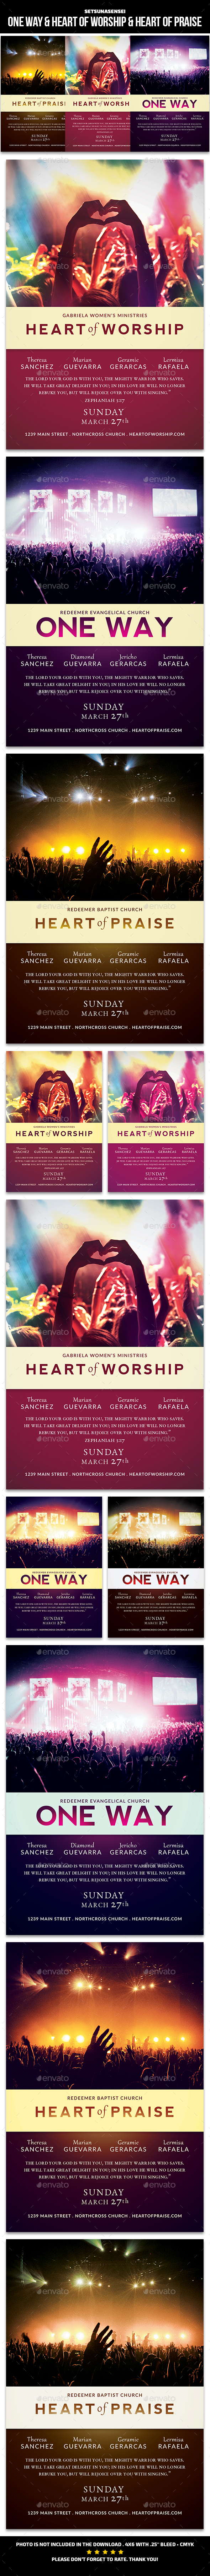 One Way & Heart of Worship & Heart of Praise Flyer - Church Flyers